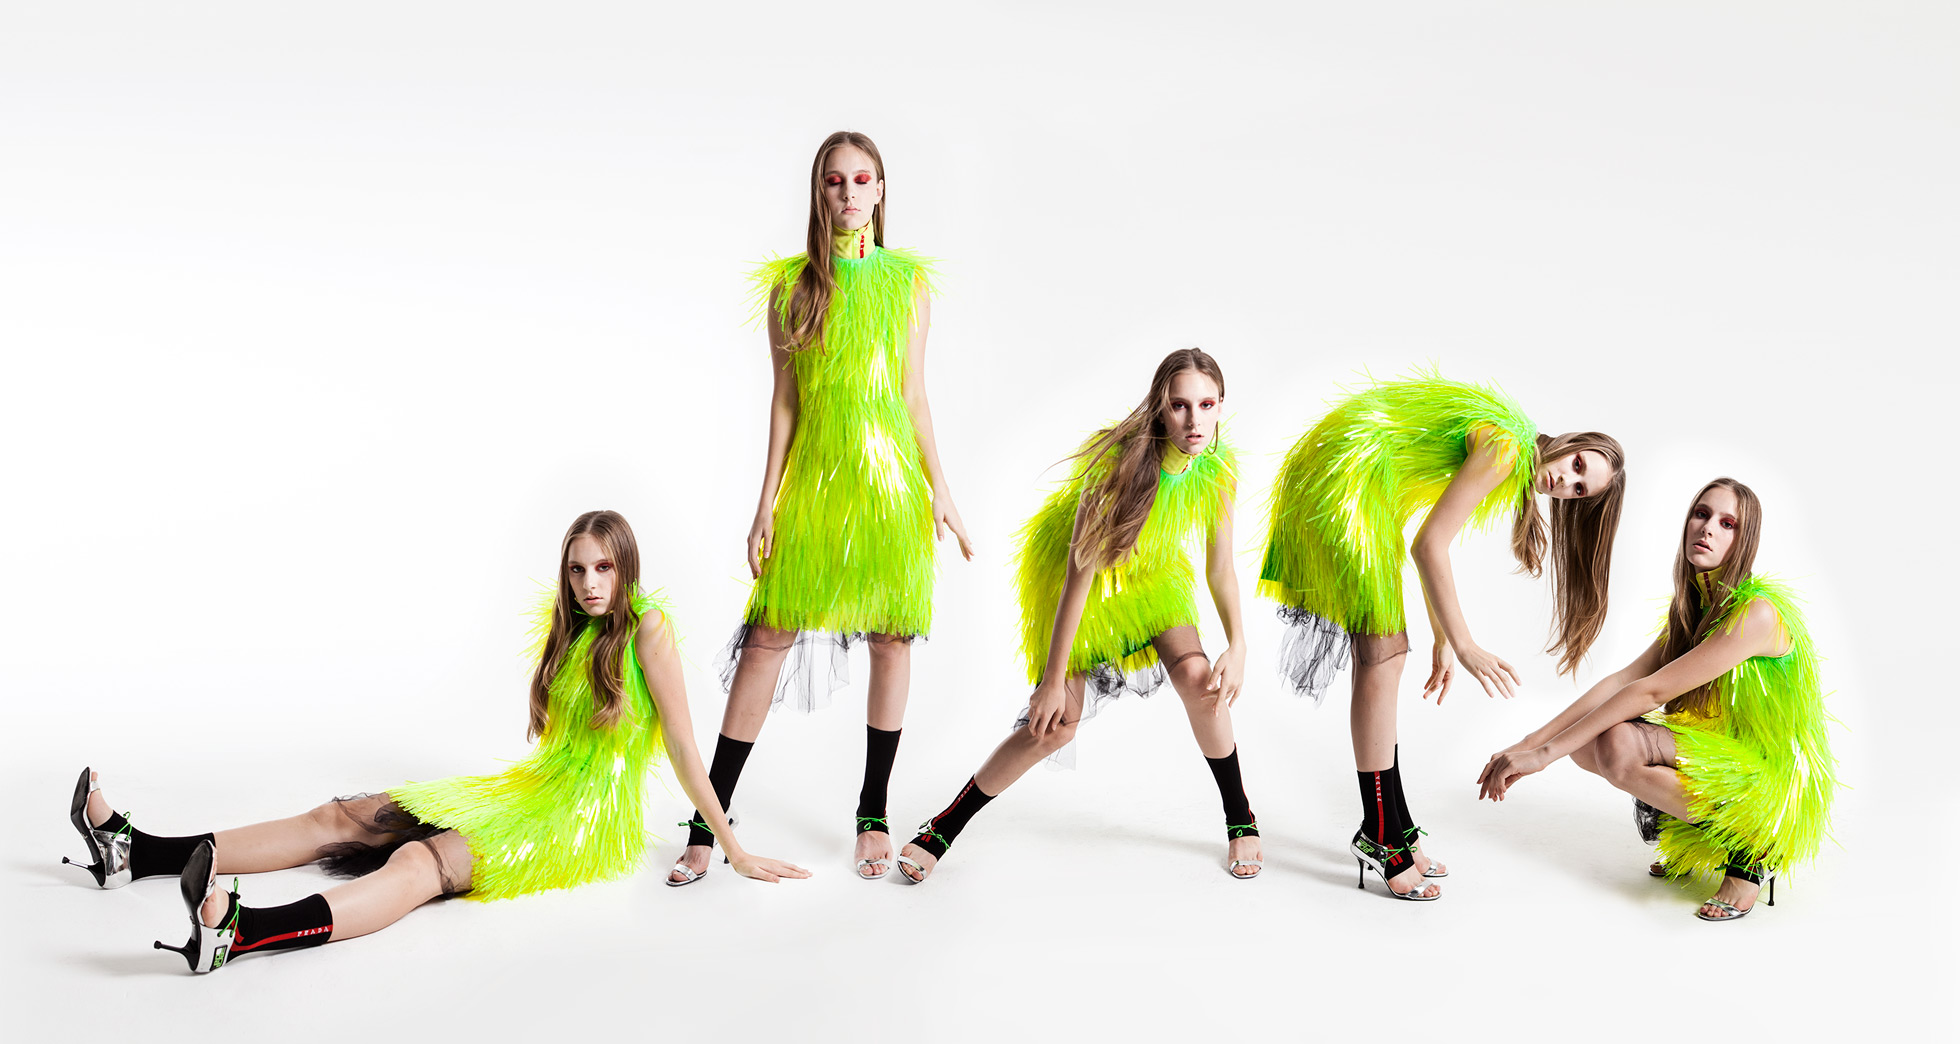 A model poses in a neon fringe Prada look